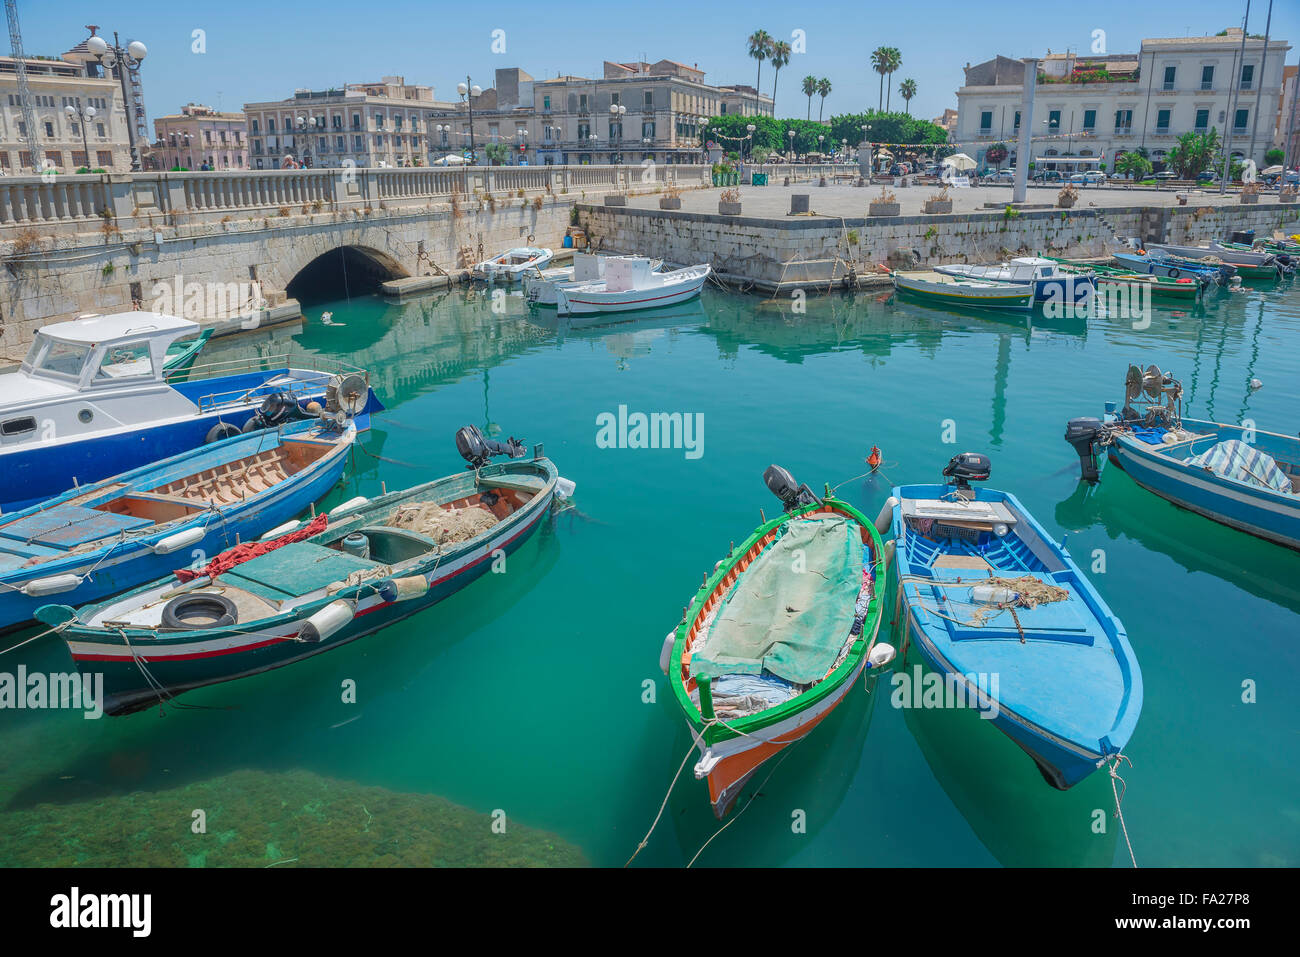 Fishing boats sicily, view of fishing boats moored in the inner harbour at Syracuse, Siracusa, Sicily. - Stock Image